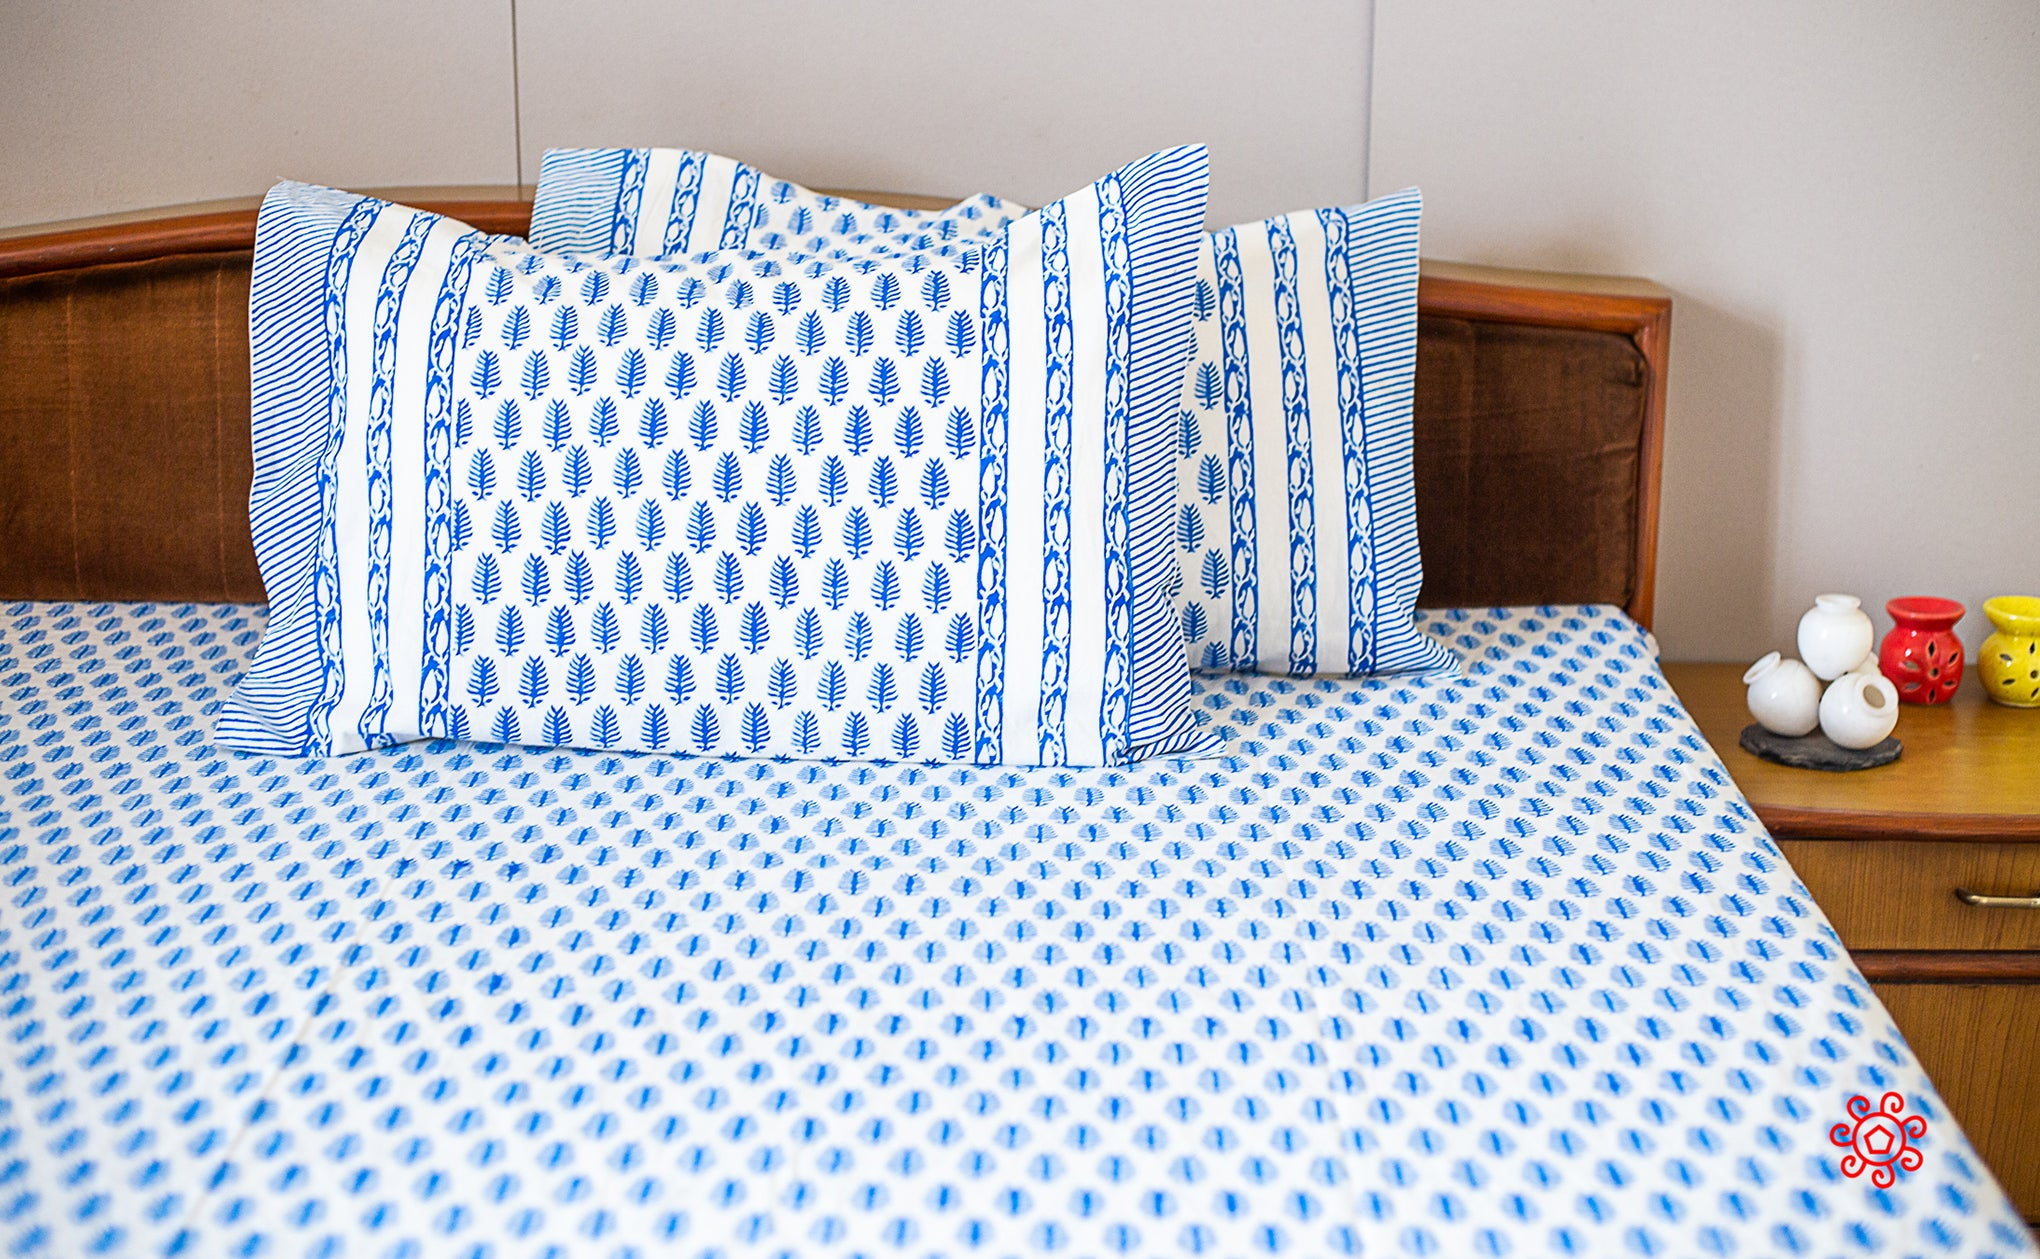 Roysha 2021 Bed Sheet/Flat Sheet/ Bed Linen - Queen Size, 100% Handmade, Hand Block Printed, Pure Cotton, Indigo collection, Room Decor